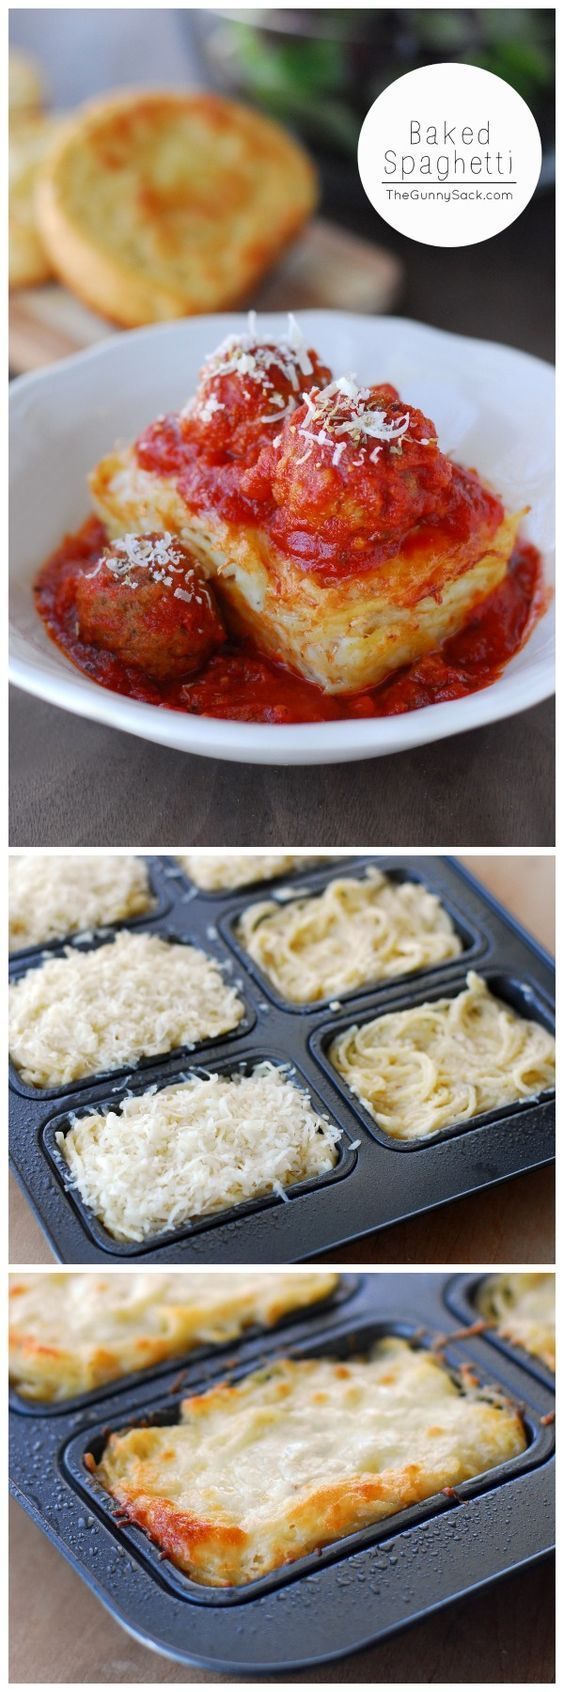 SUPER POPULAR RECIPE!! Baked Spaghetti recipe for mini loaves of creamy Alfredo baked spaghetti topped with meatballs and marinara sauce.